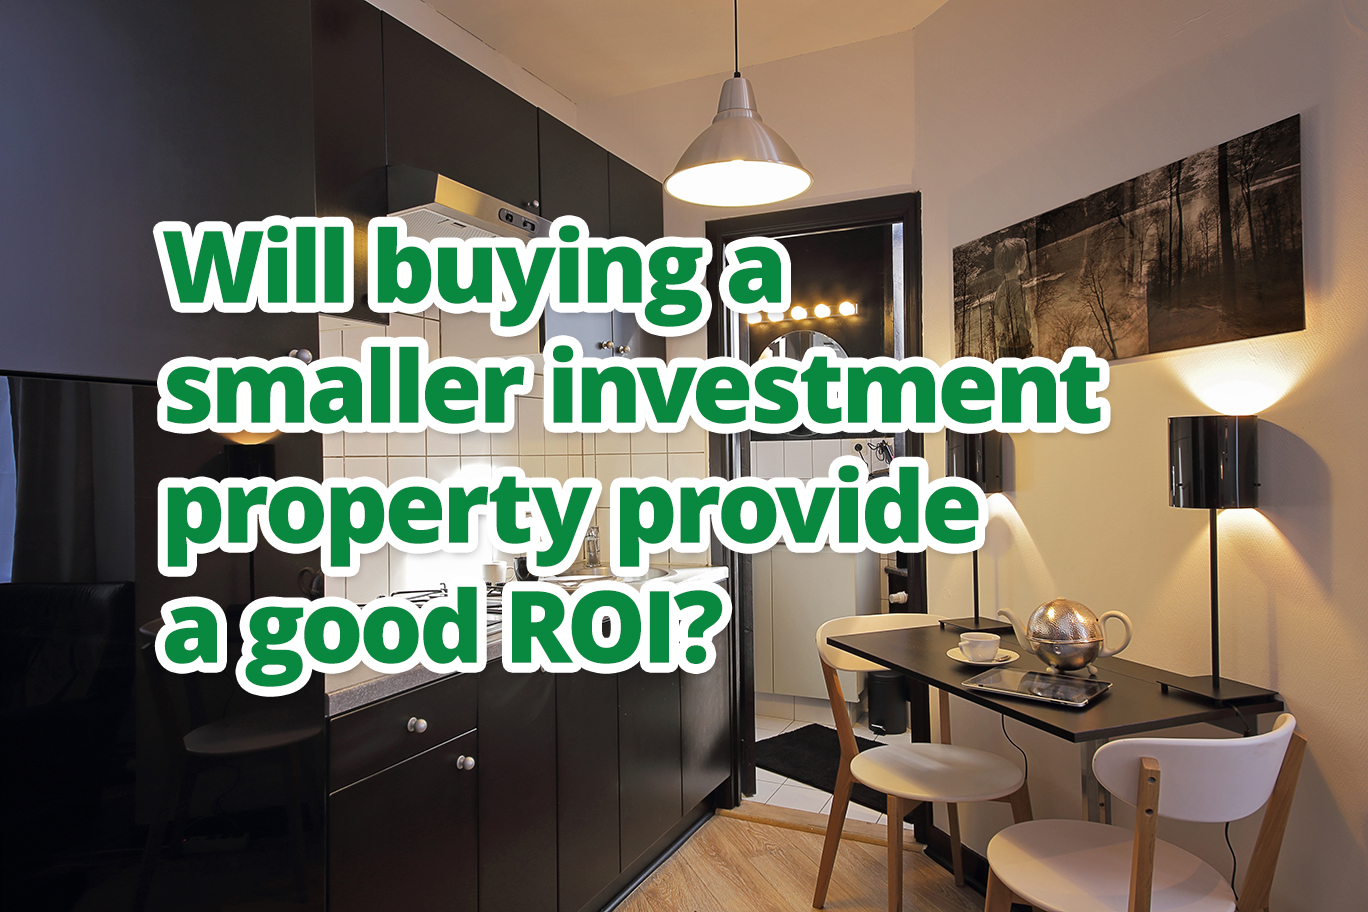 Will buying a smaller investment property provide a good ROI?